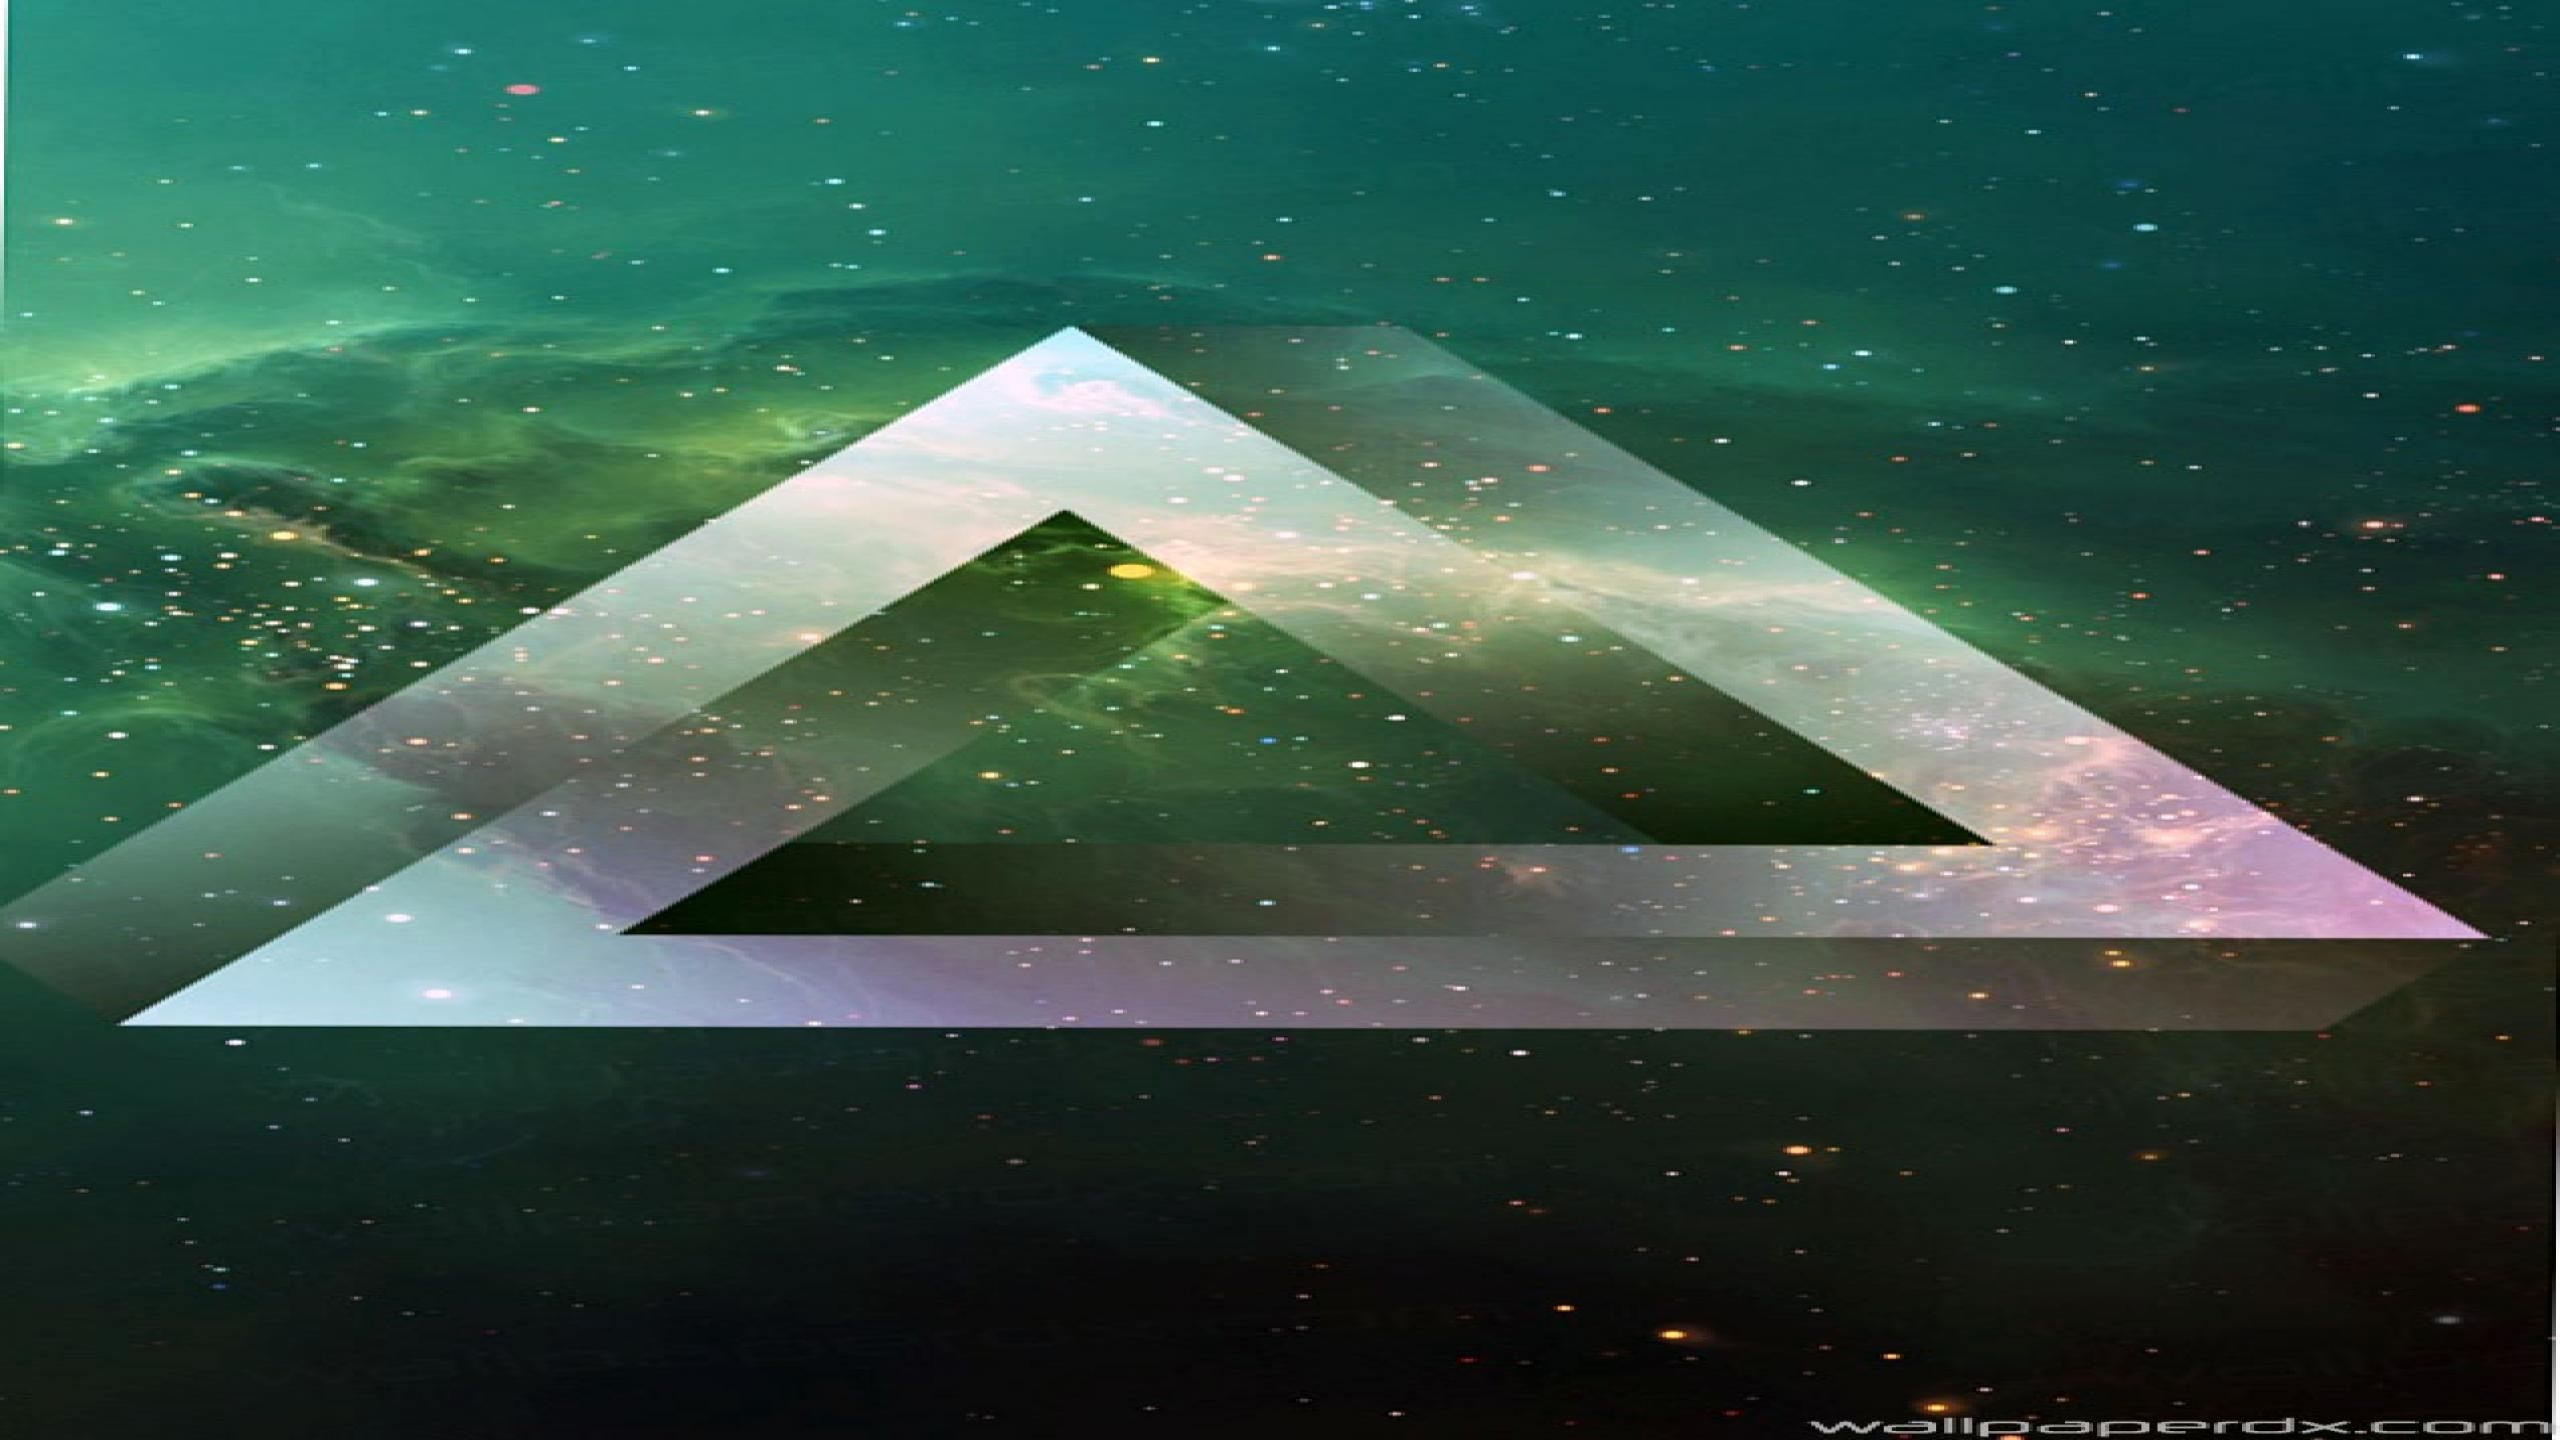 Impossible Triangle Wallpapers - Top Free Impossible ...